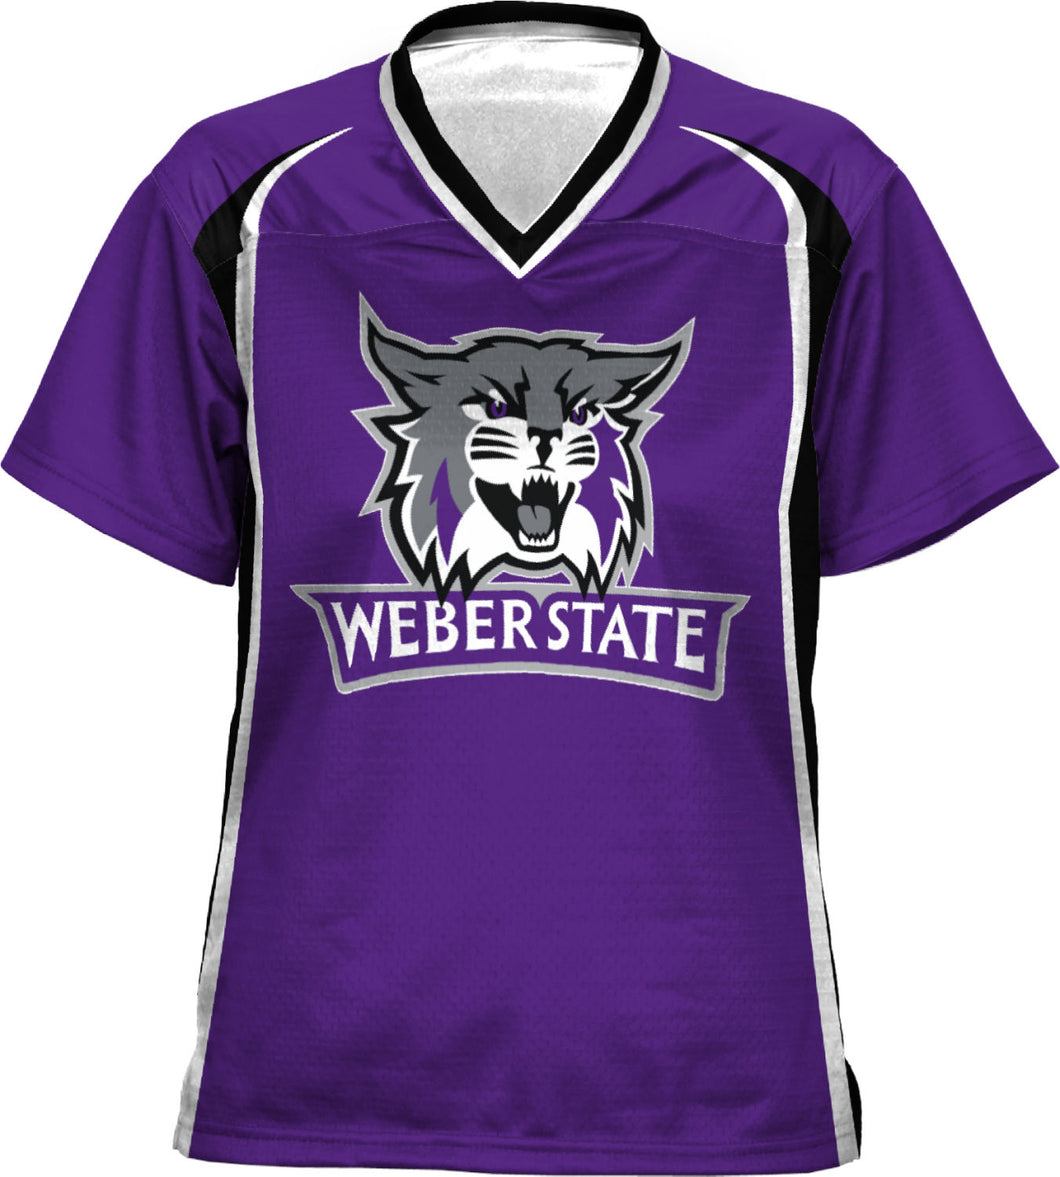 Weber State University: Women's Football Fan Jersey - Wild Horse